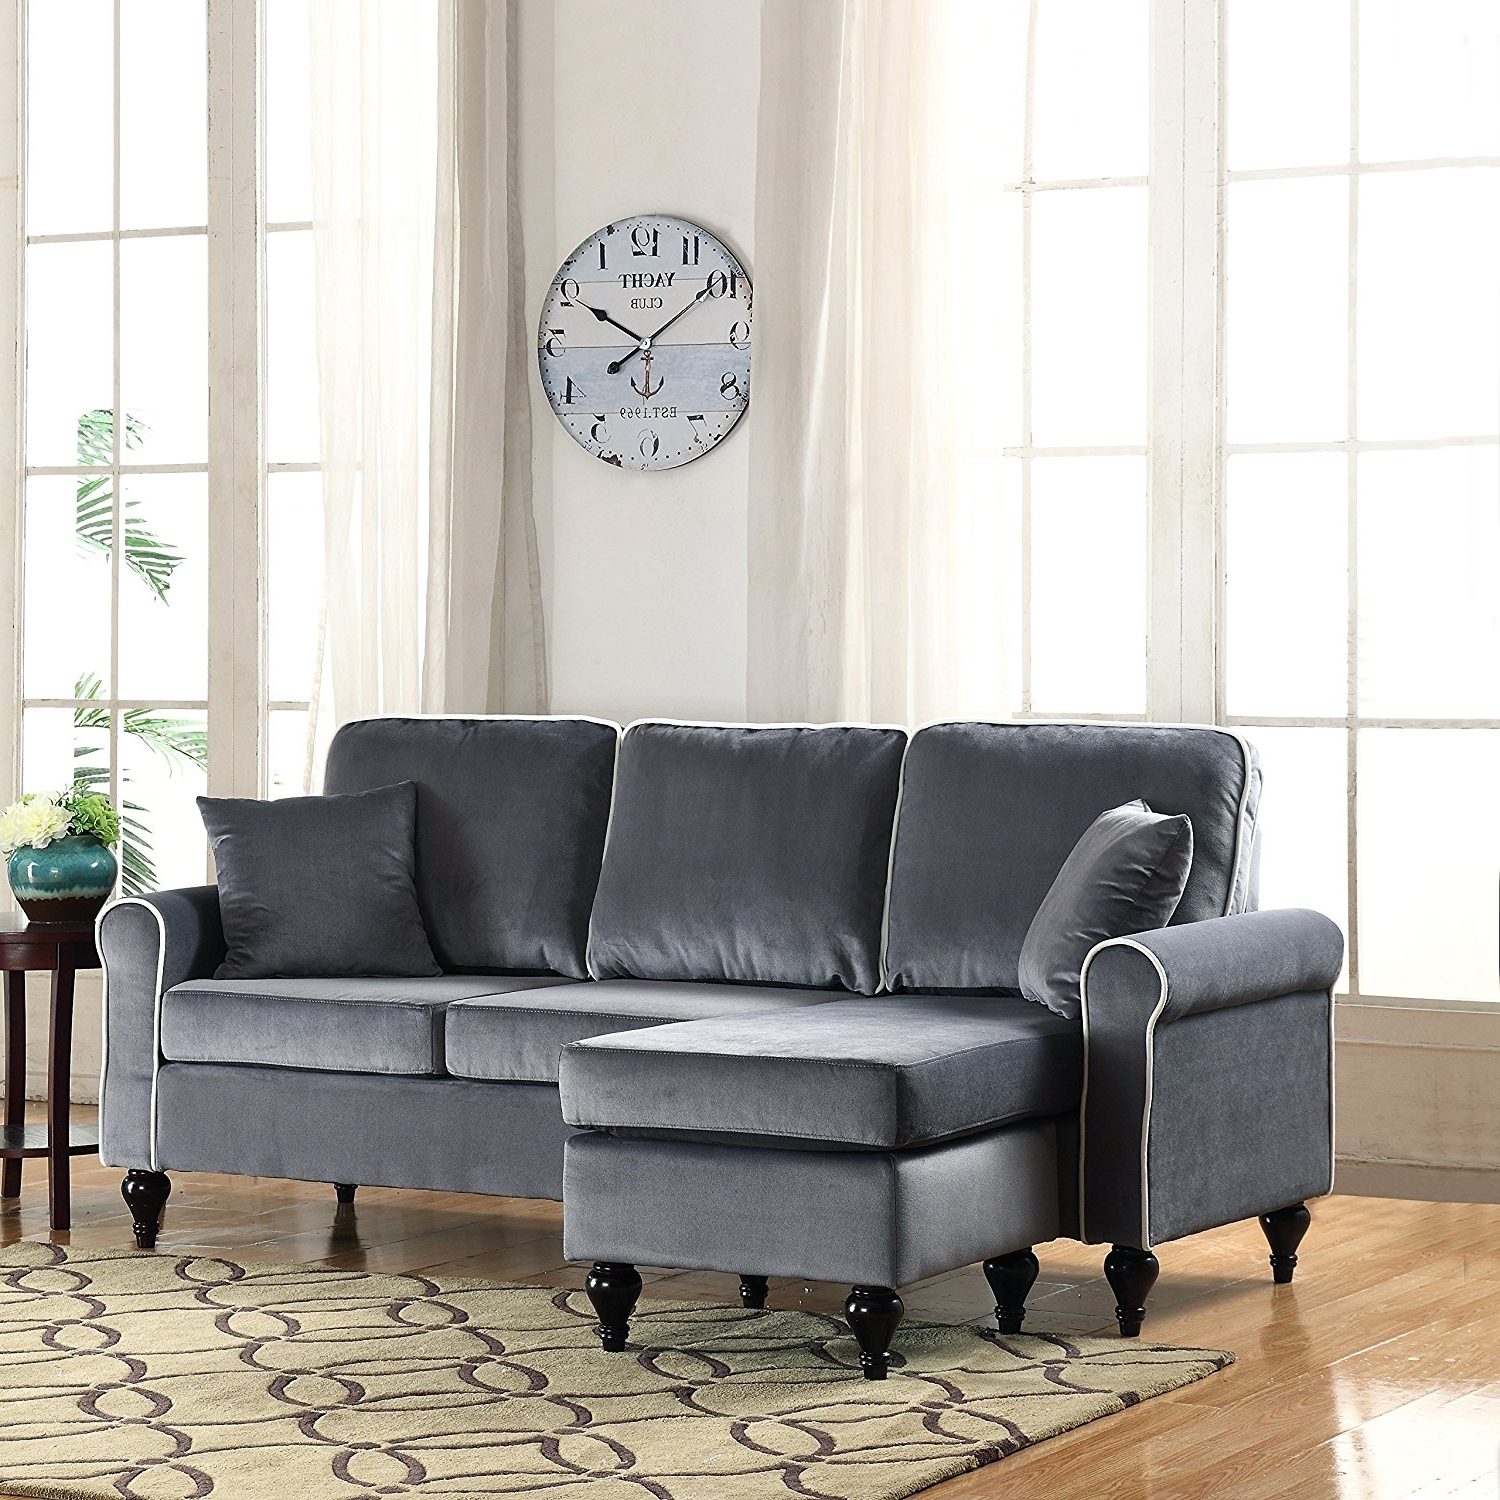 Best And Newest Amazon: Classic And Traditional Small Space Velvet Sectional Regarding Sofas With Reversible Chaise (View 3 of 15)